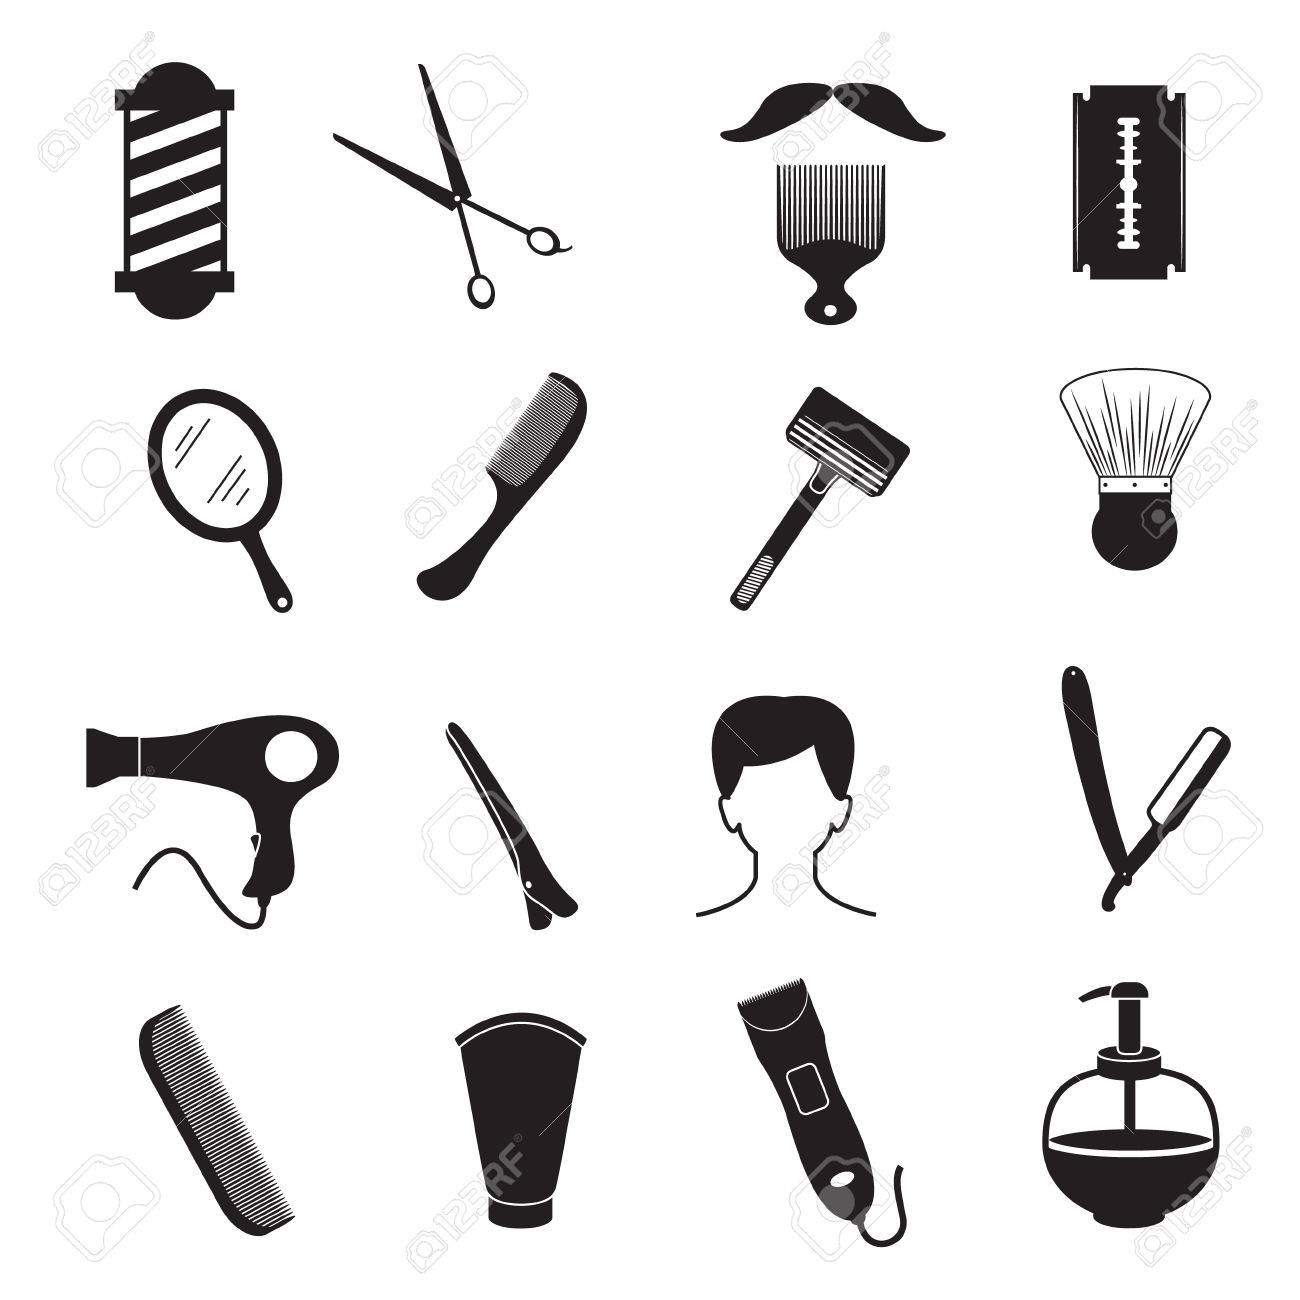 Barber Tools And Men Hairstyle Equipments Royalty Free Cliparts ...